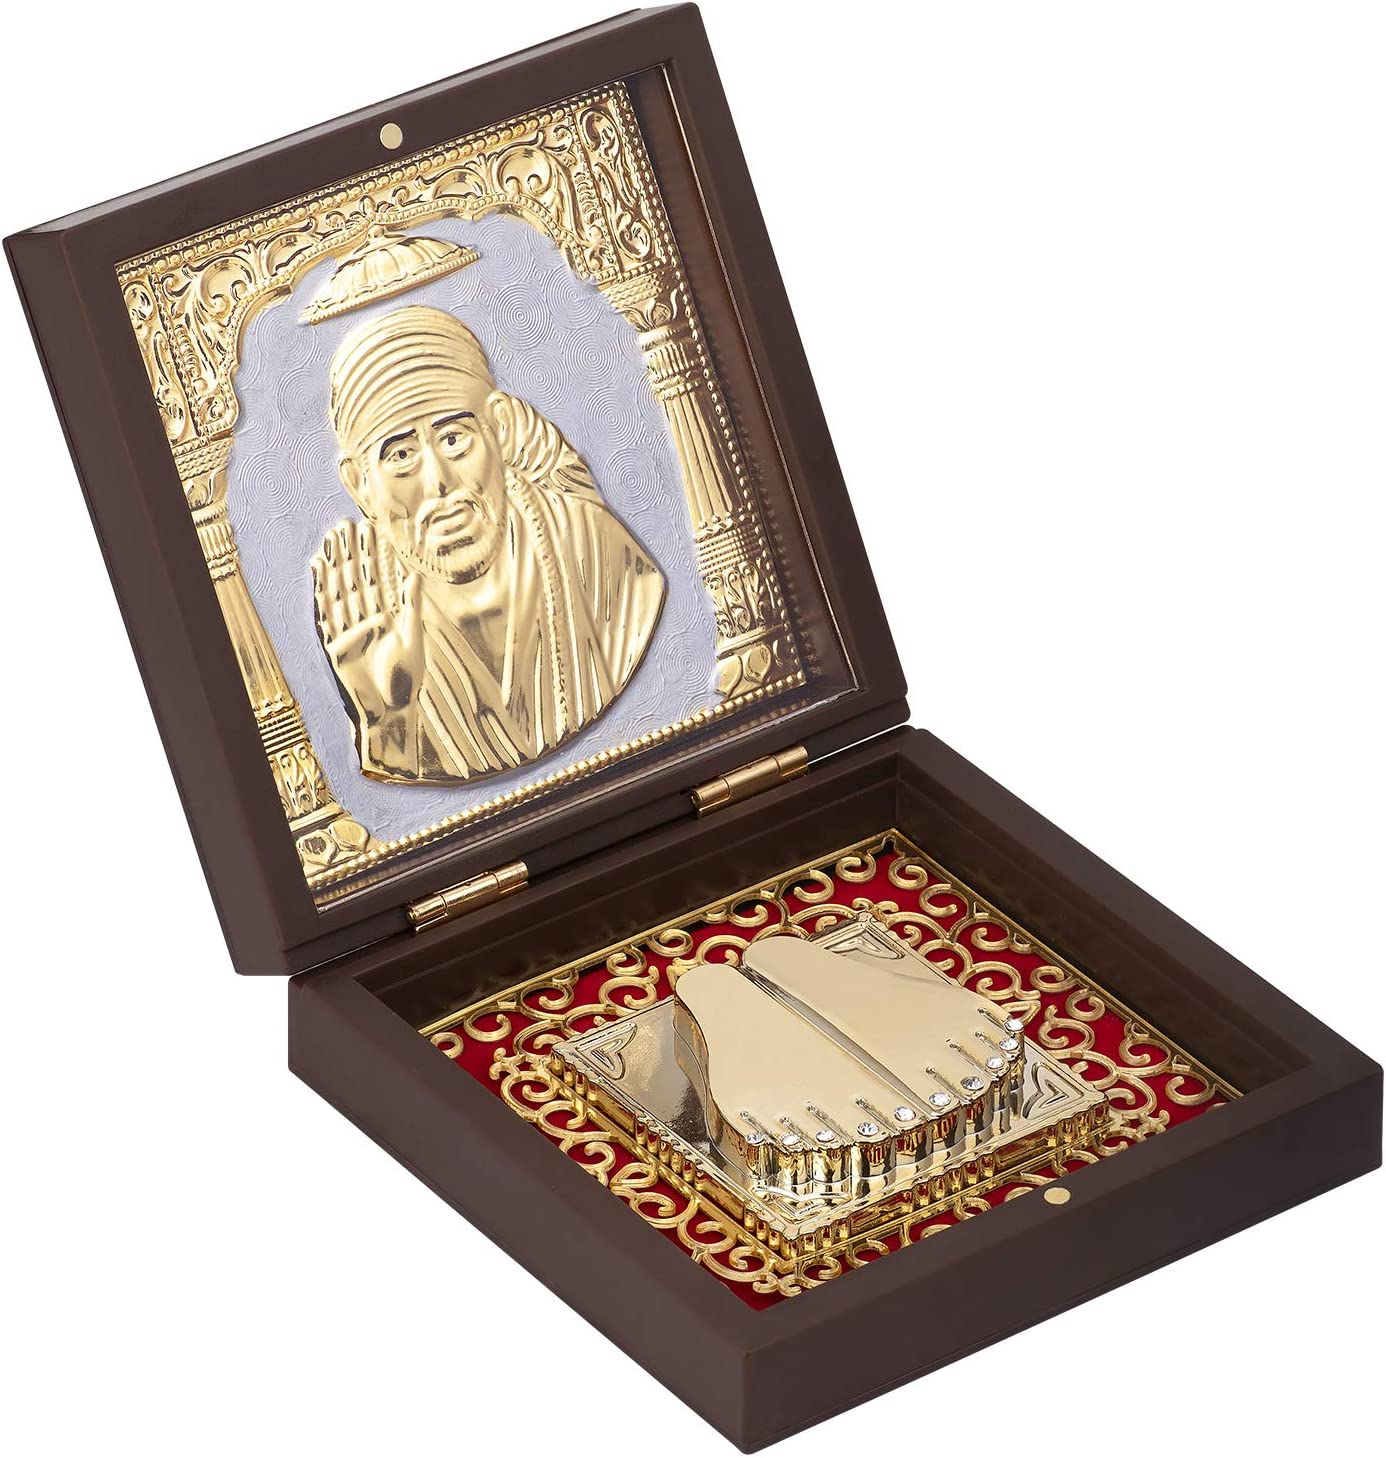 Aheli Indian God Sai Baba of Shirdi Idol Photo Frame Statue Holy Momento Frame for Pooja God of Fortune Shrine for Diwali Puja Indian Mythology Hindu Religious Charm Decorative Accessories Gifts